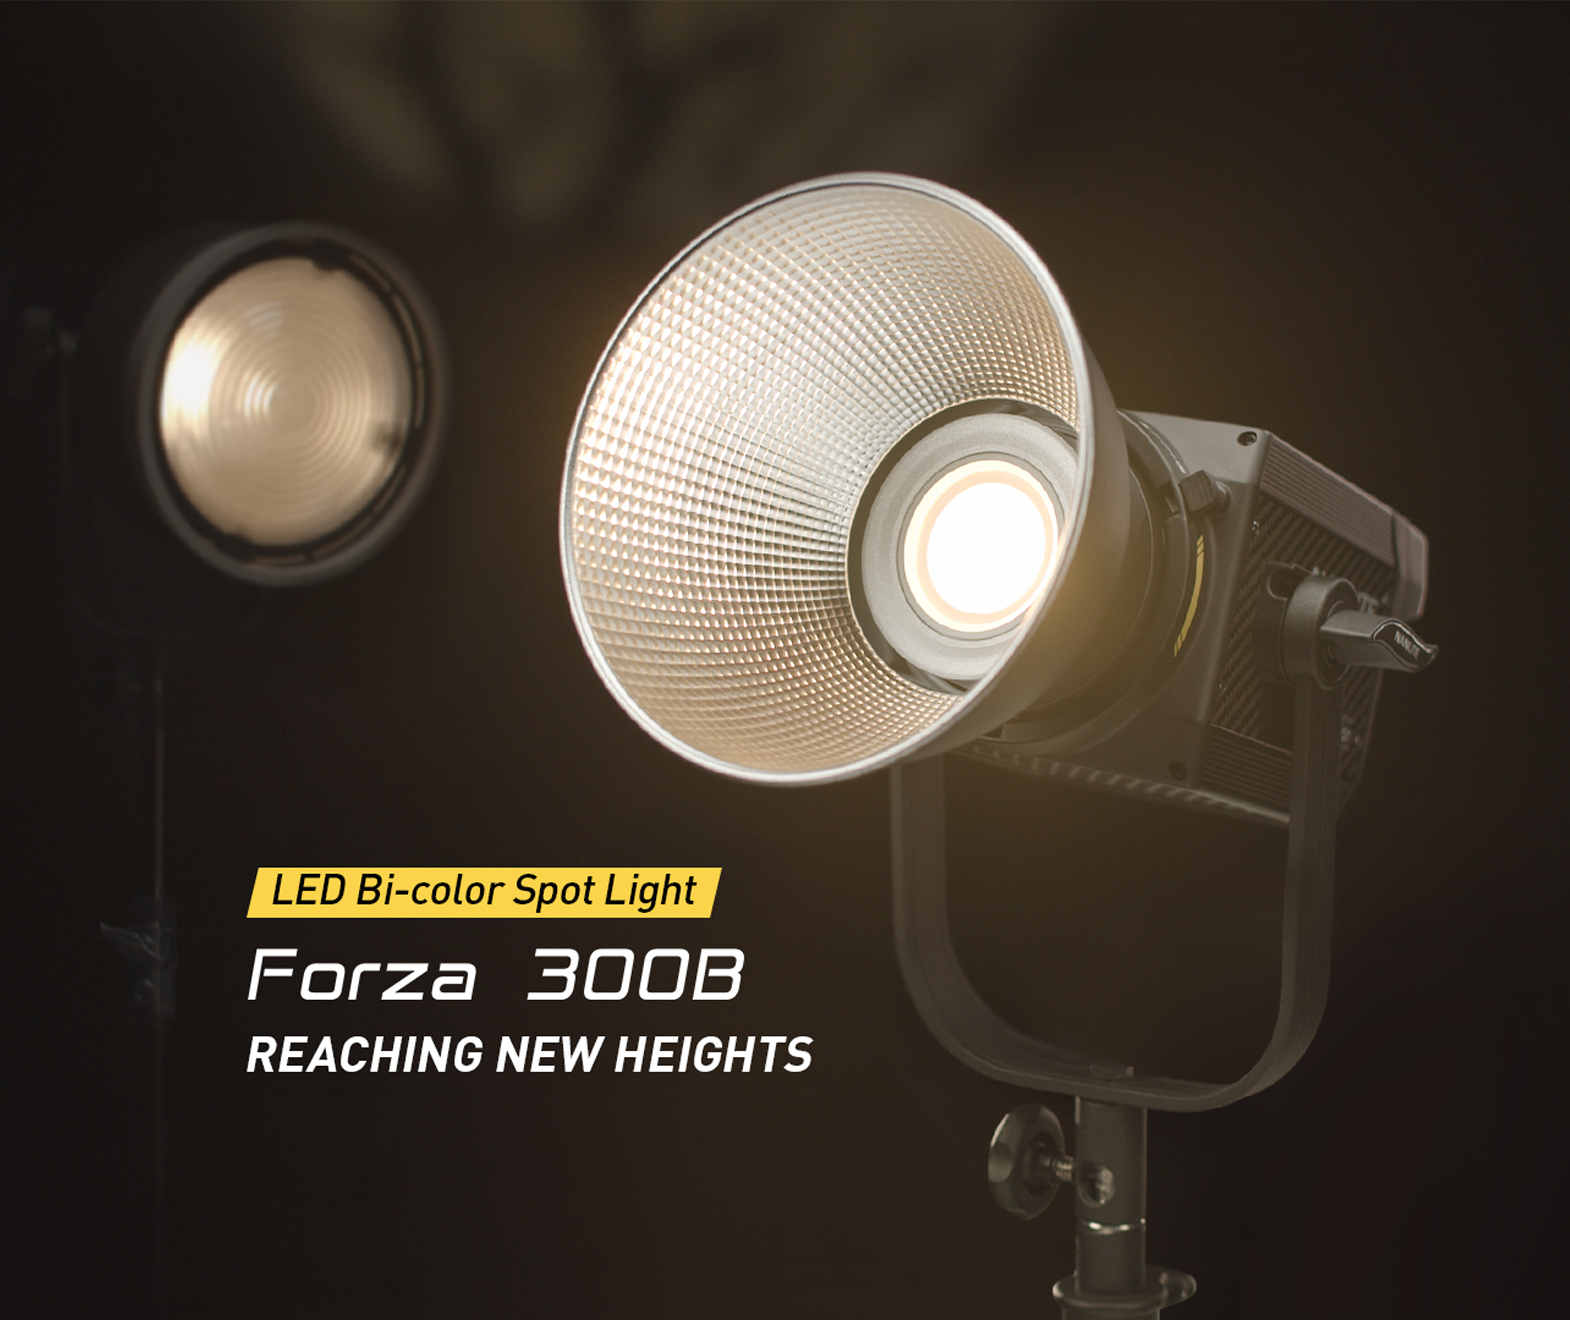 NanLite Forza 300B LED Bi-color Spot Light 37440 LUX